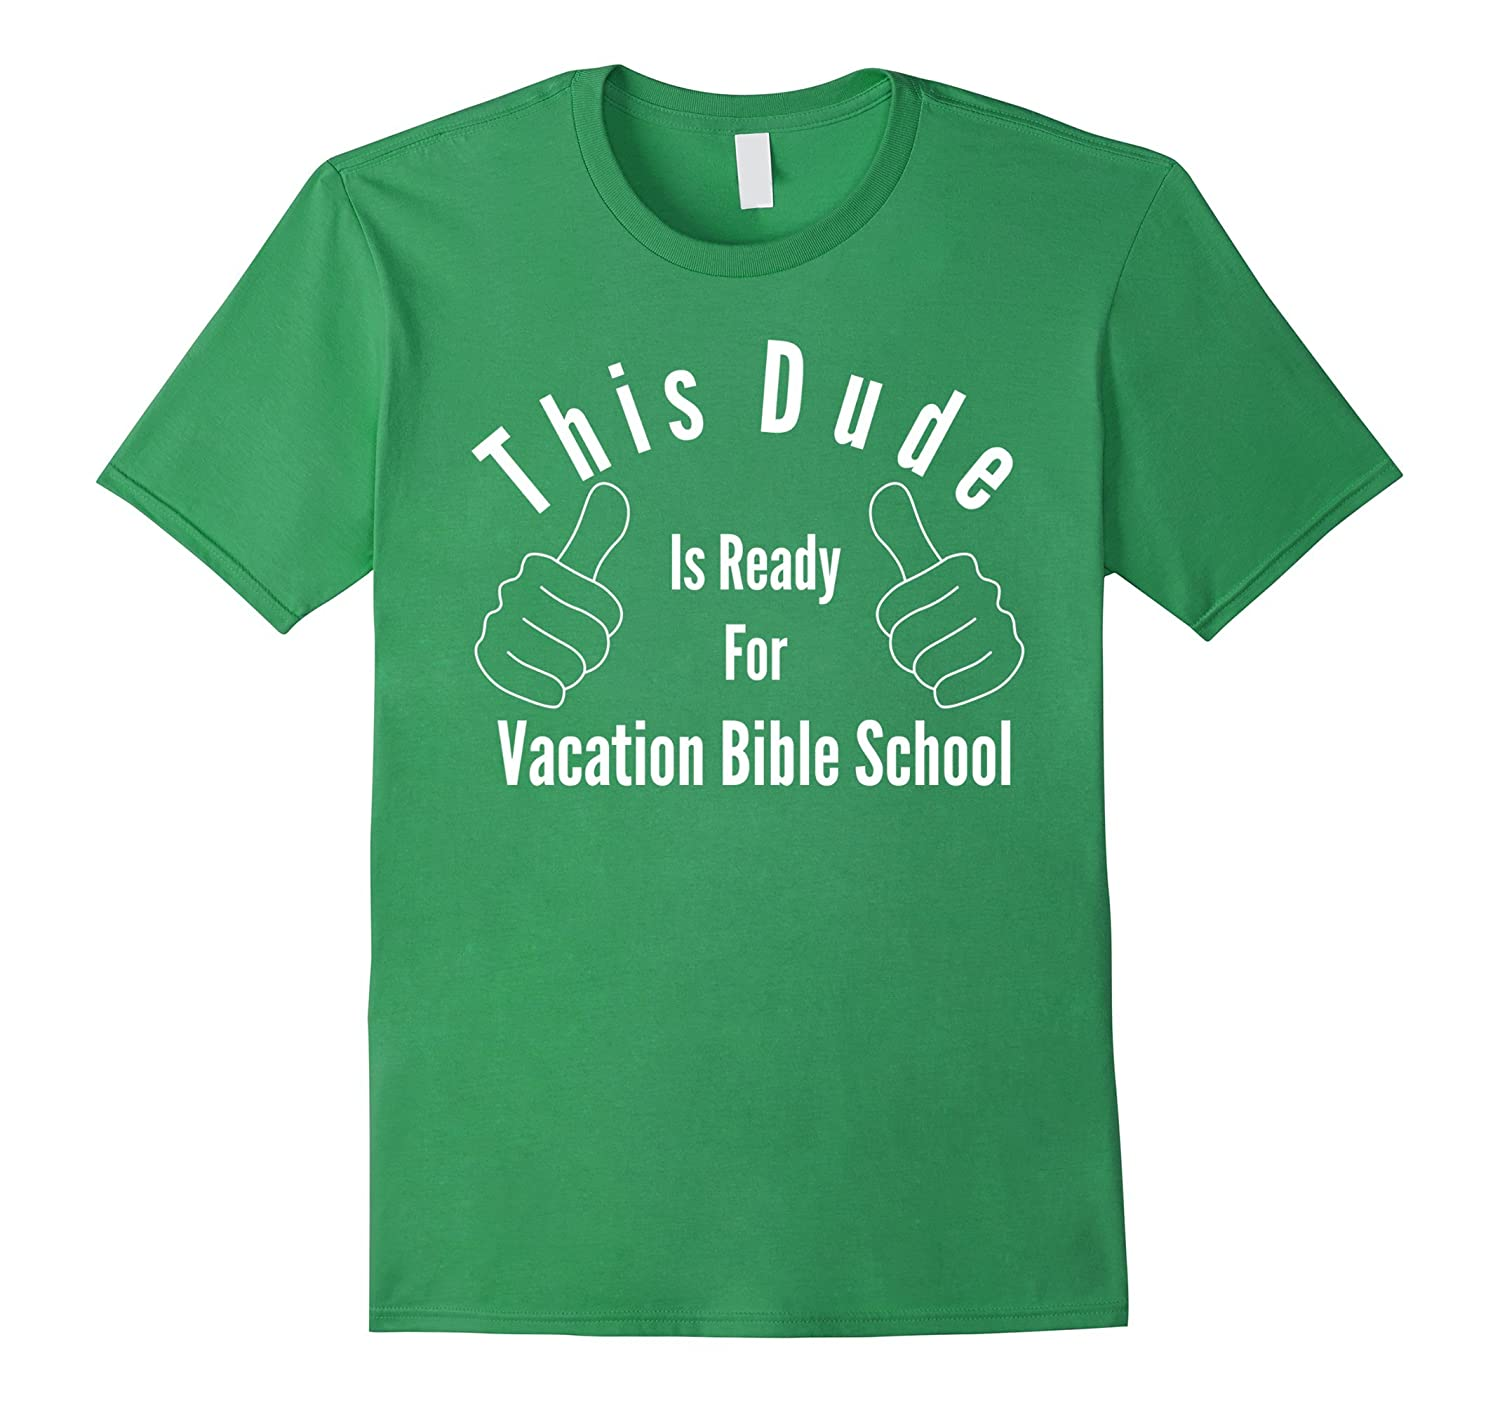 Ready for Vacation Bible School